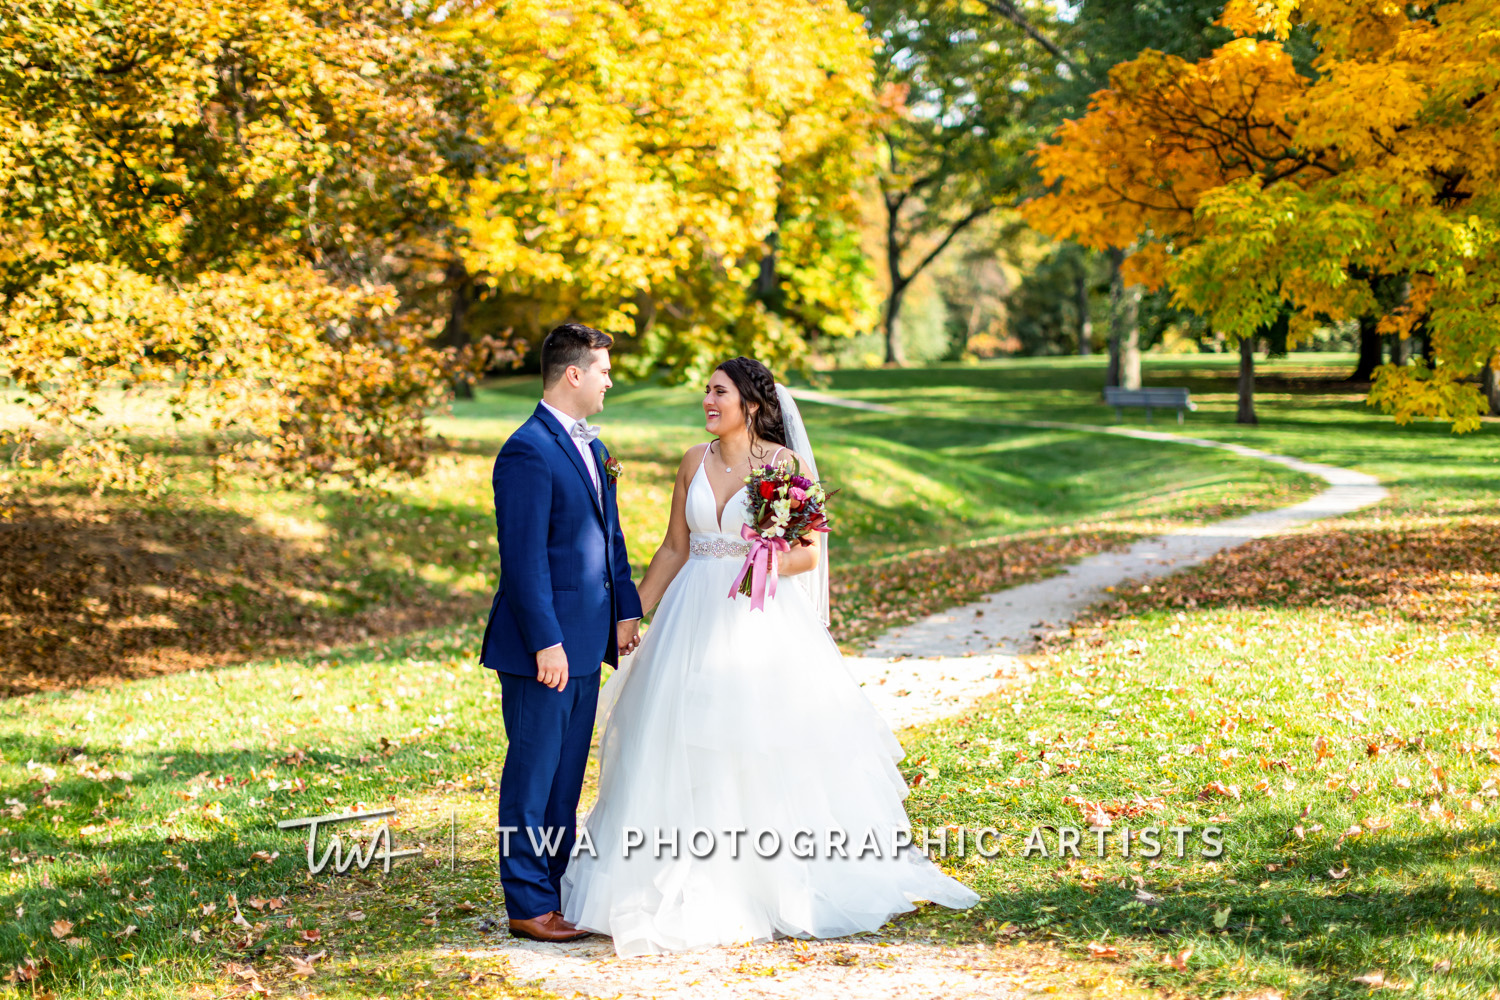 Chicago-Wedding-Photographer-TWA-Photographic-Artists-Avante-Banquets_Zickert_Quaas_MD_SG-0333